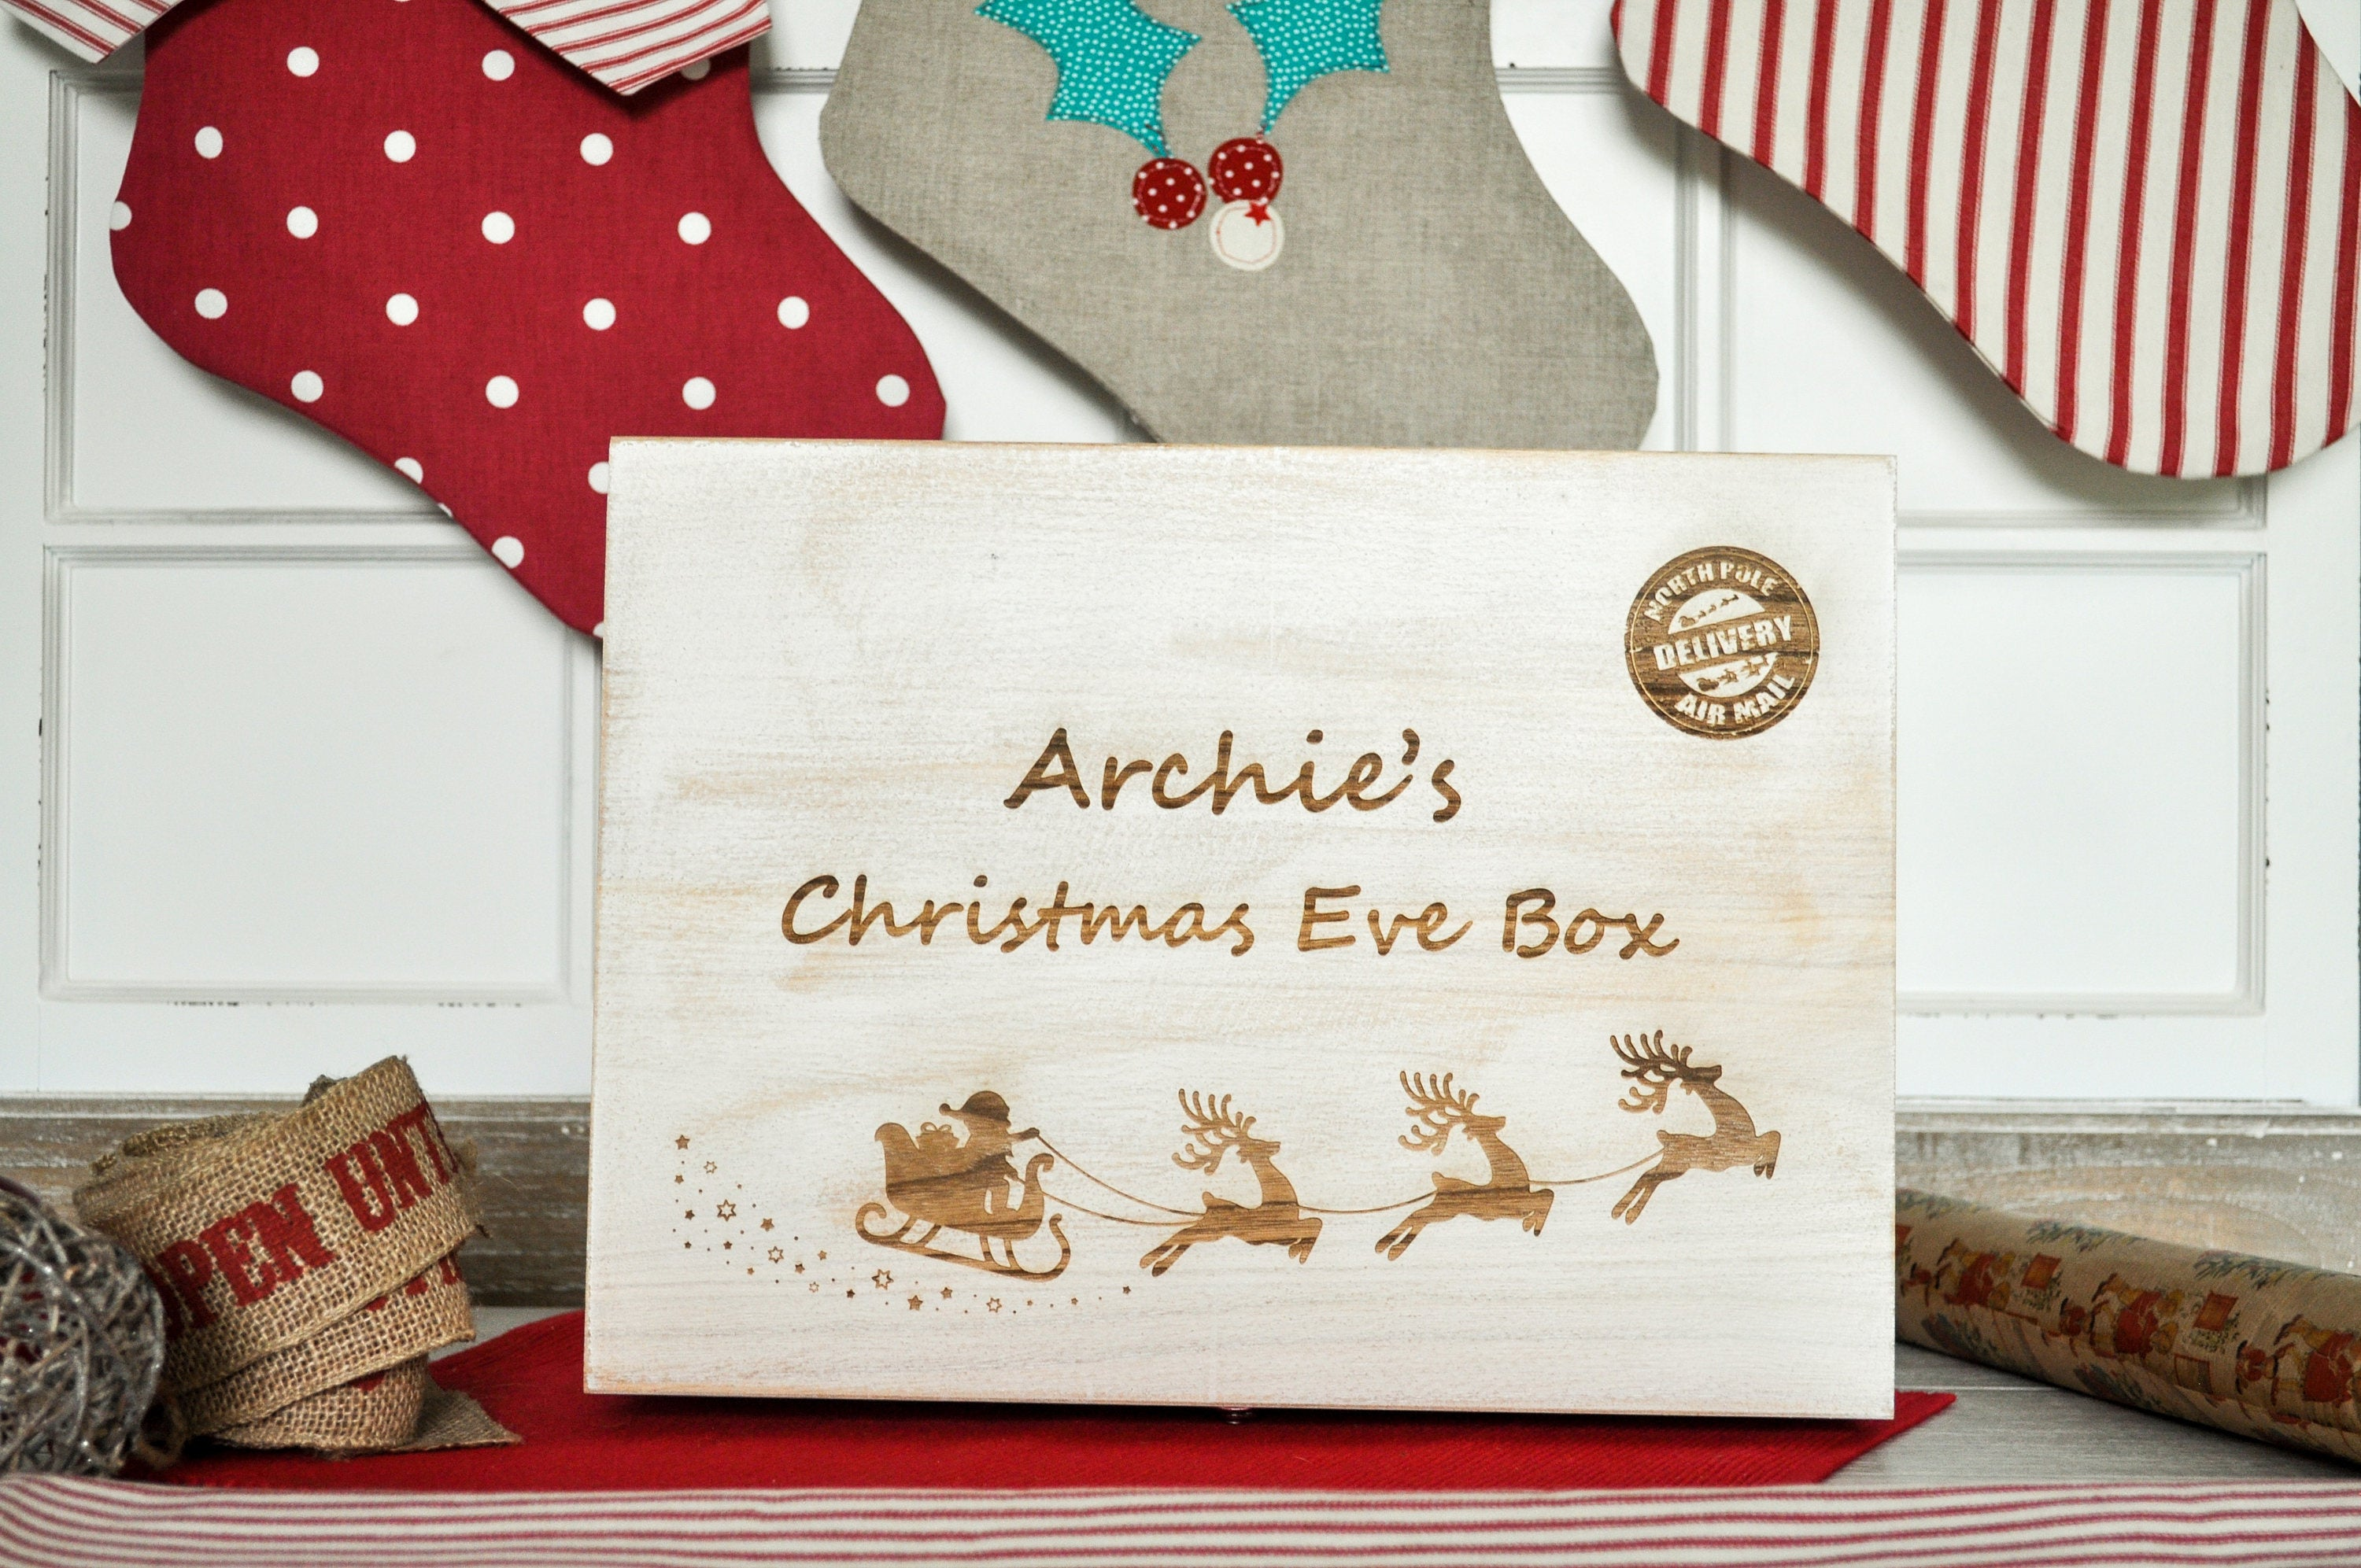 Christmas Eve Box - Personalised Santa Sleigh & Reindeer Design